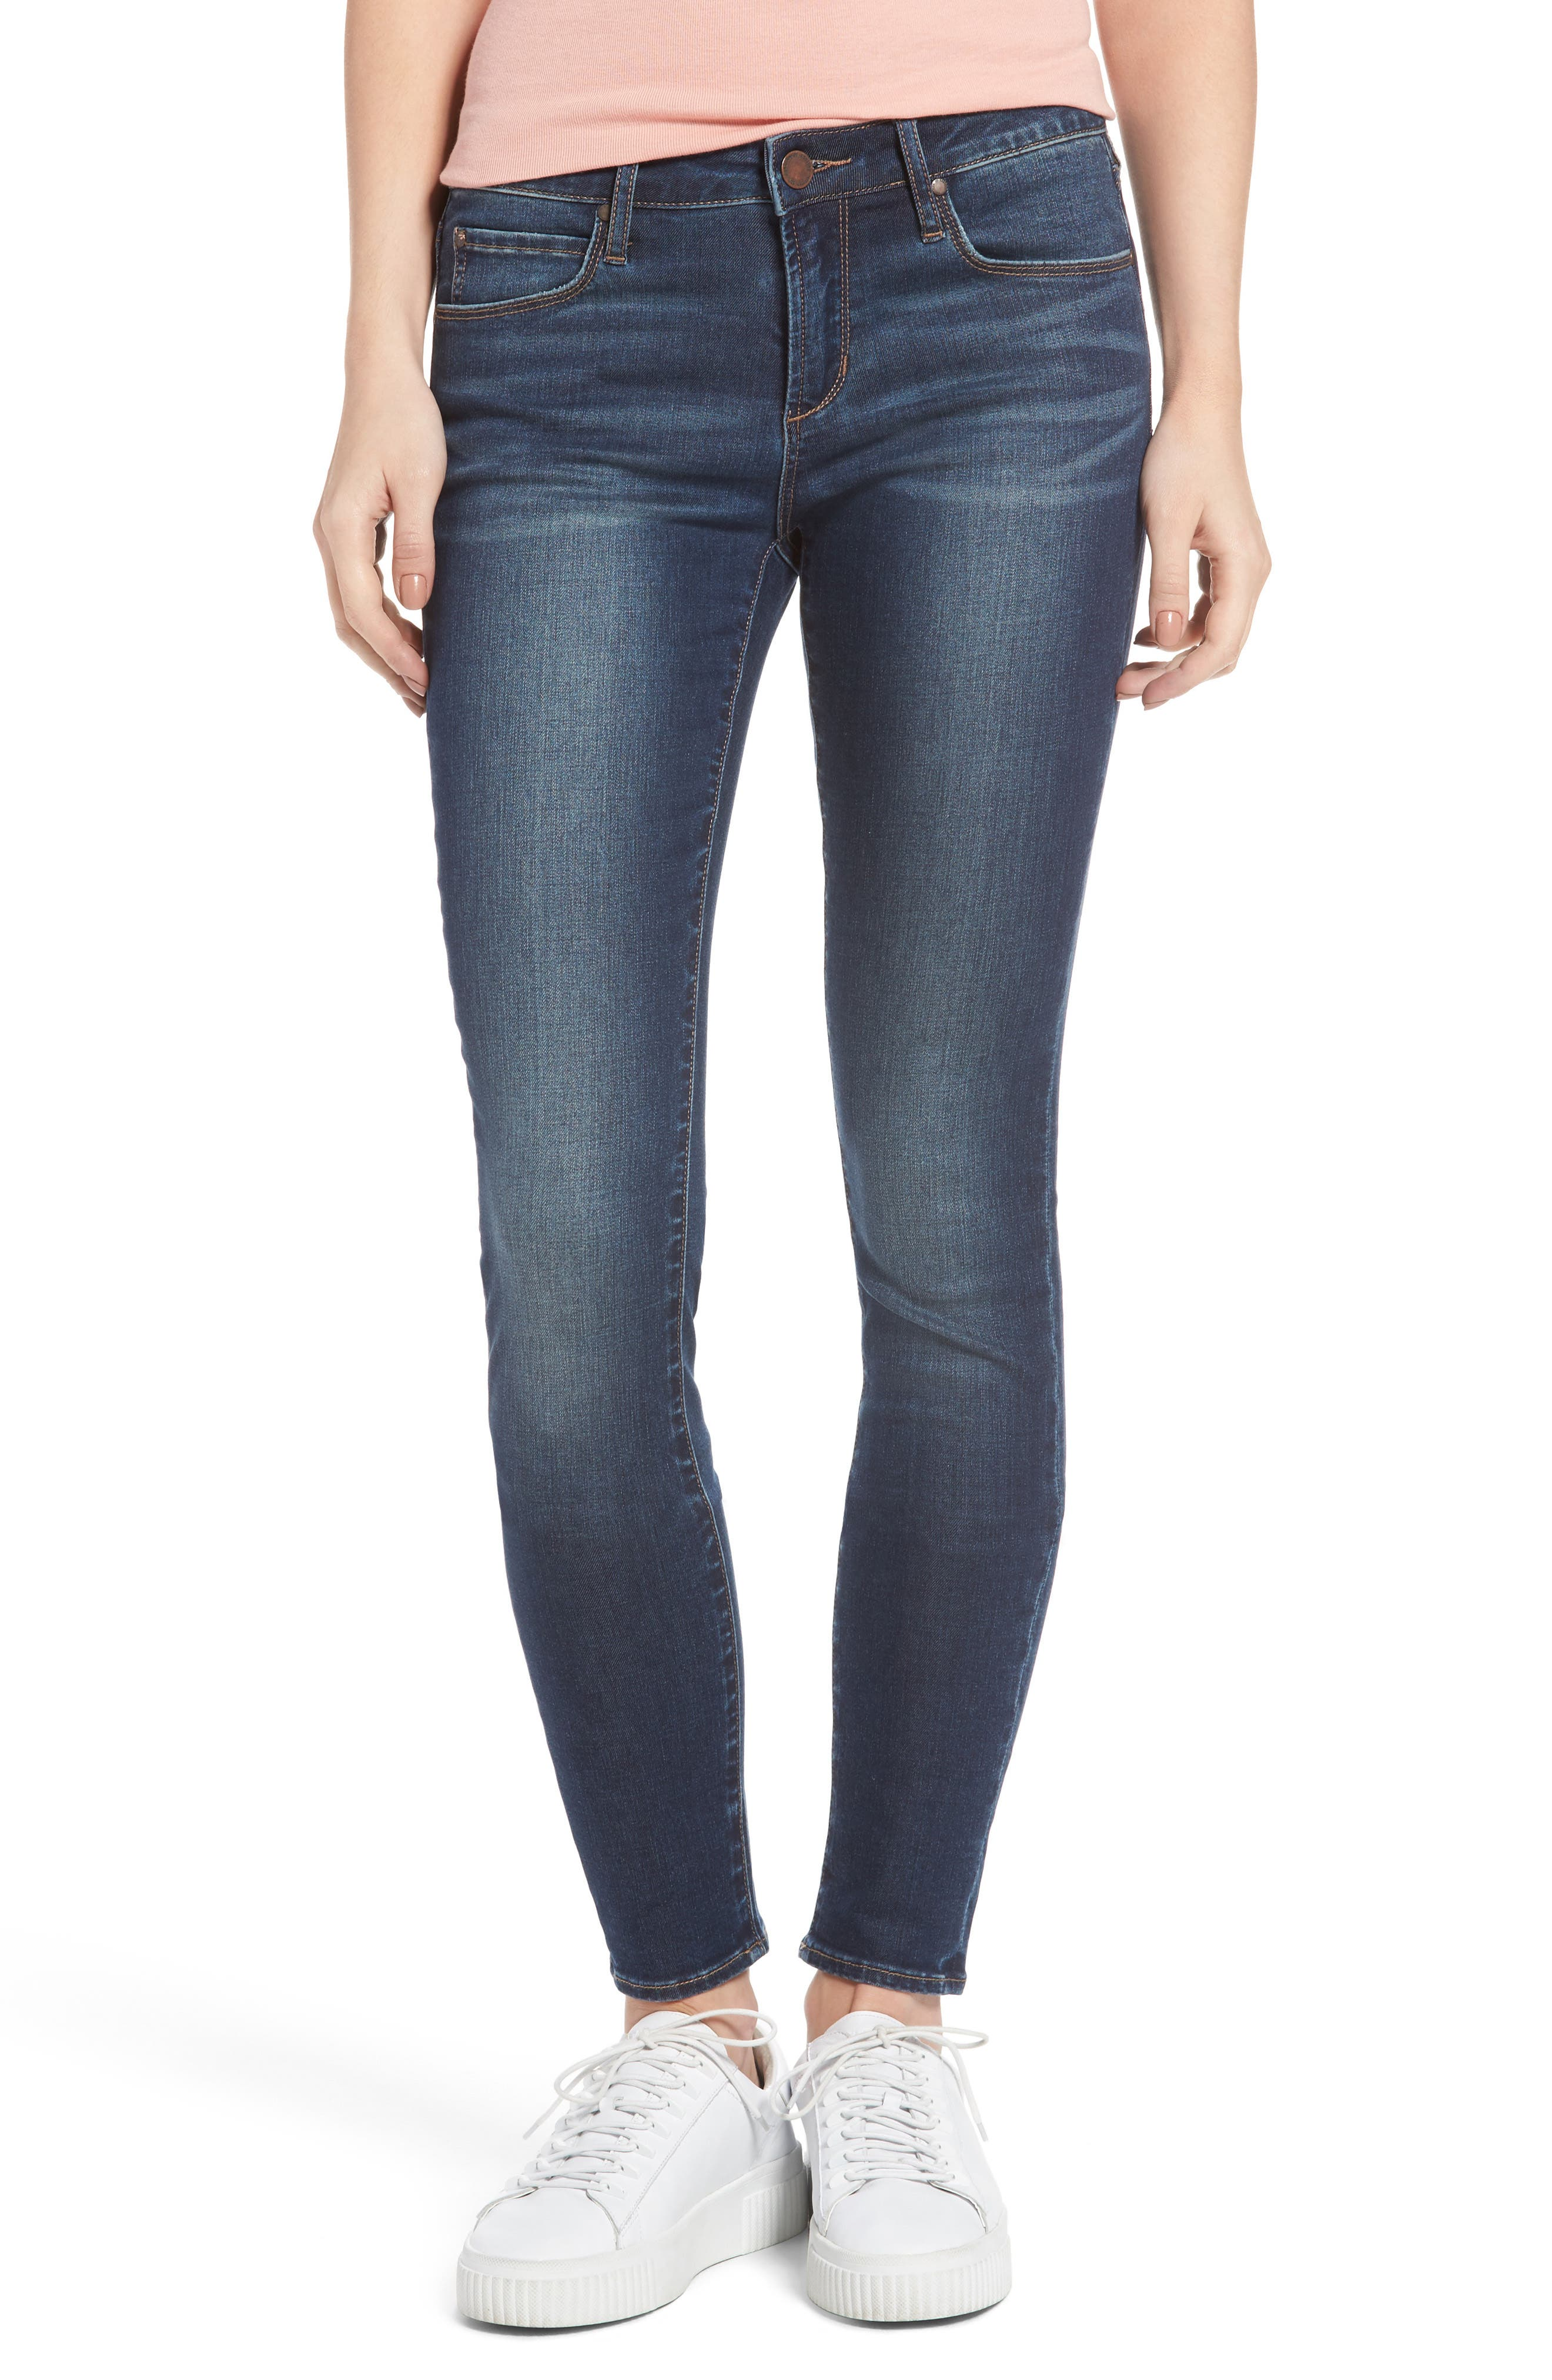 Alternate Image 1 Selected - Articles of Society Melody Skinny Jeans (Blue Ridge)